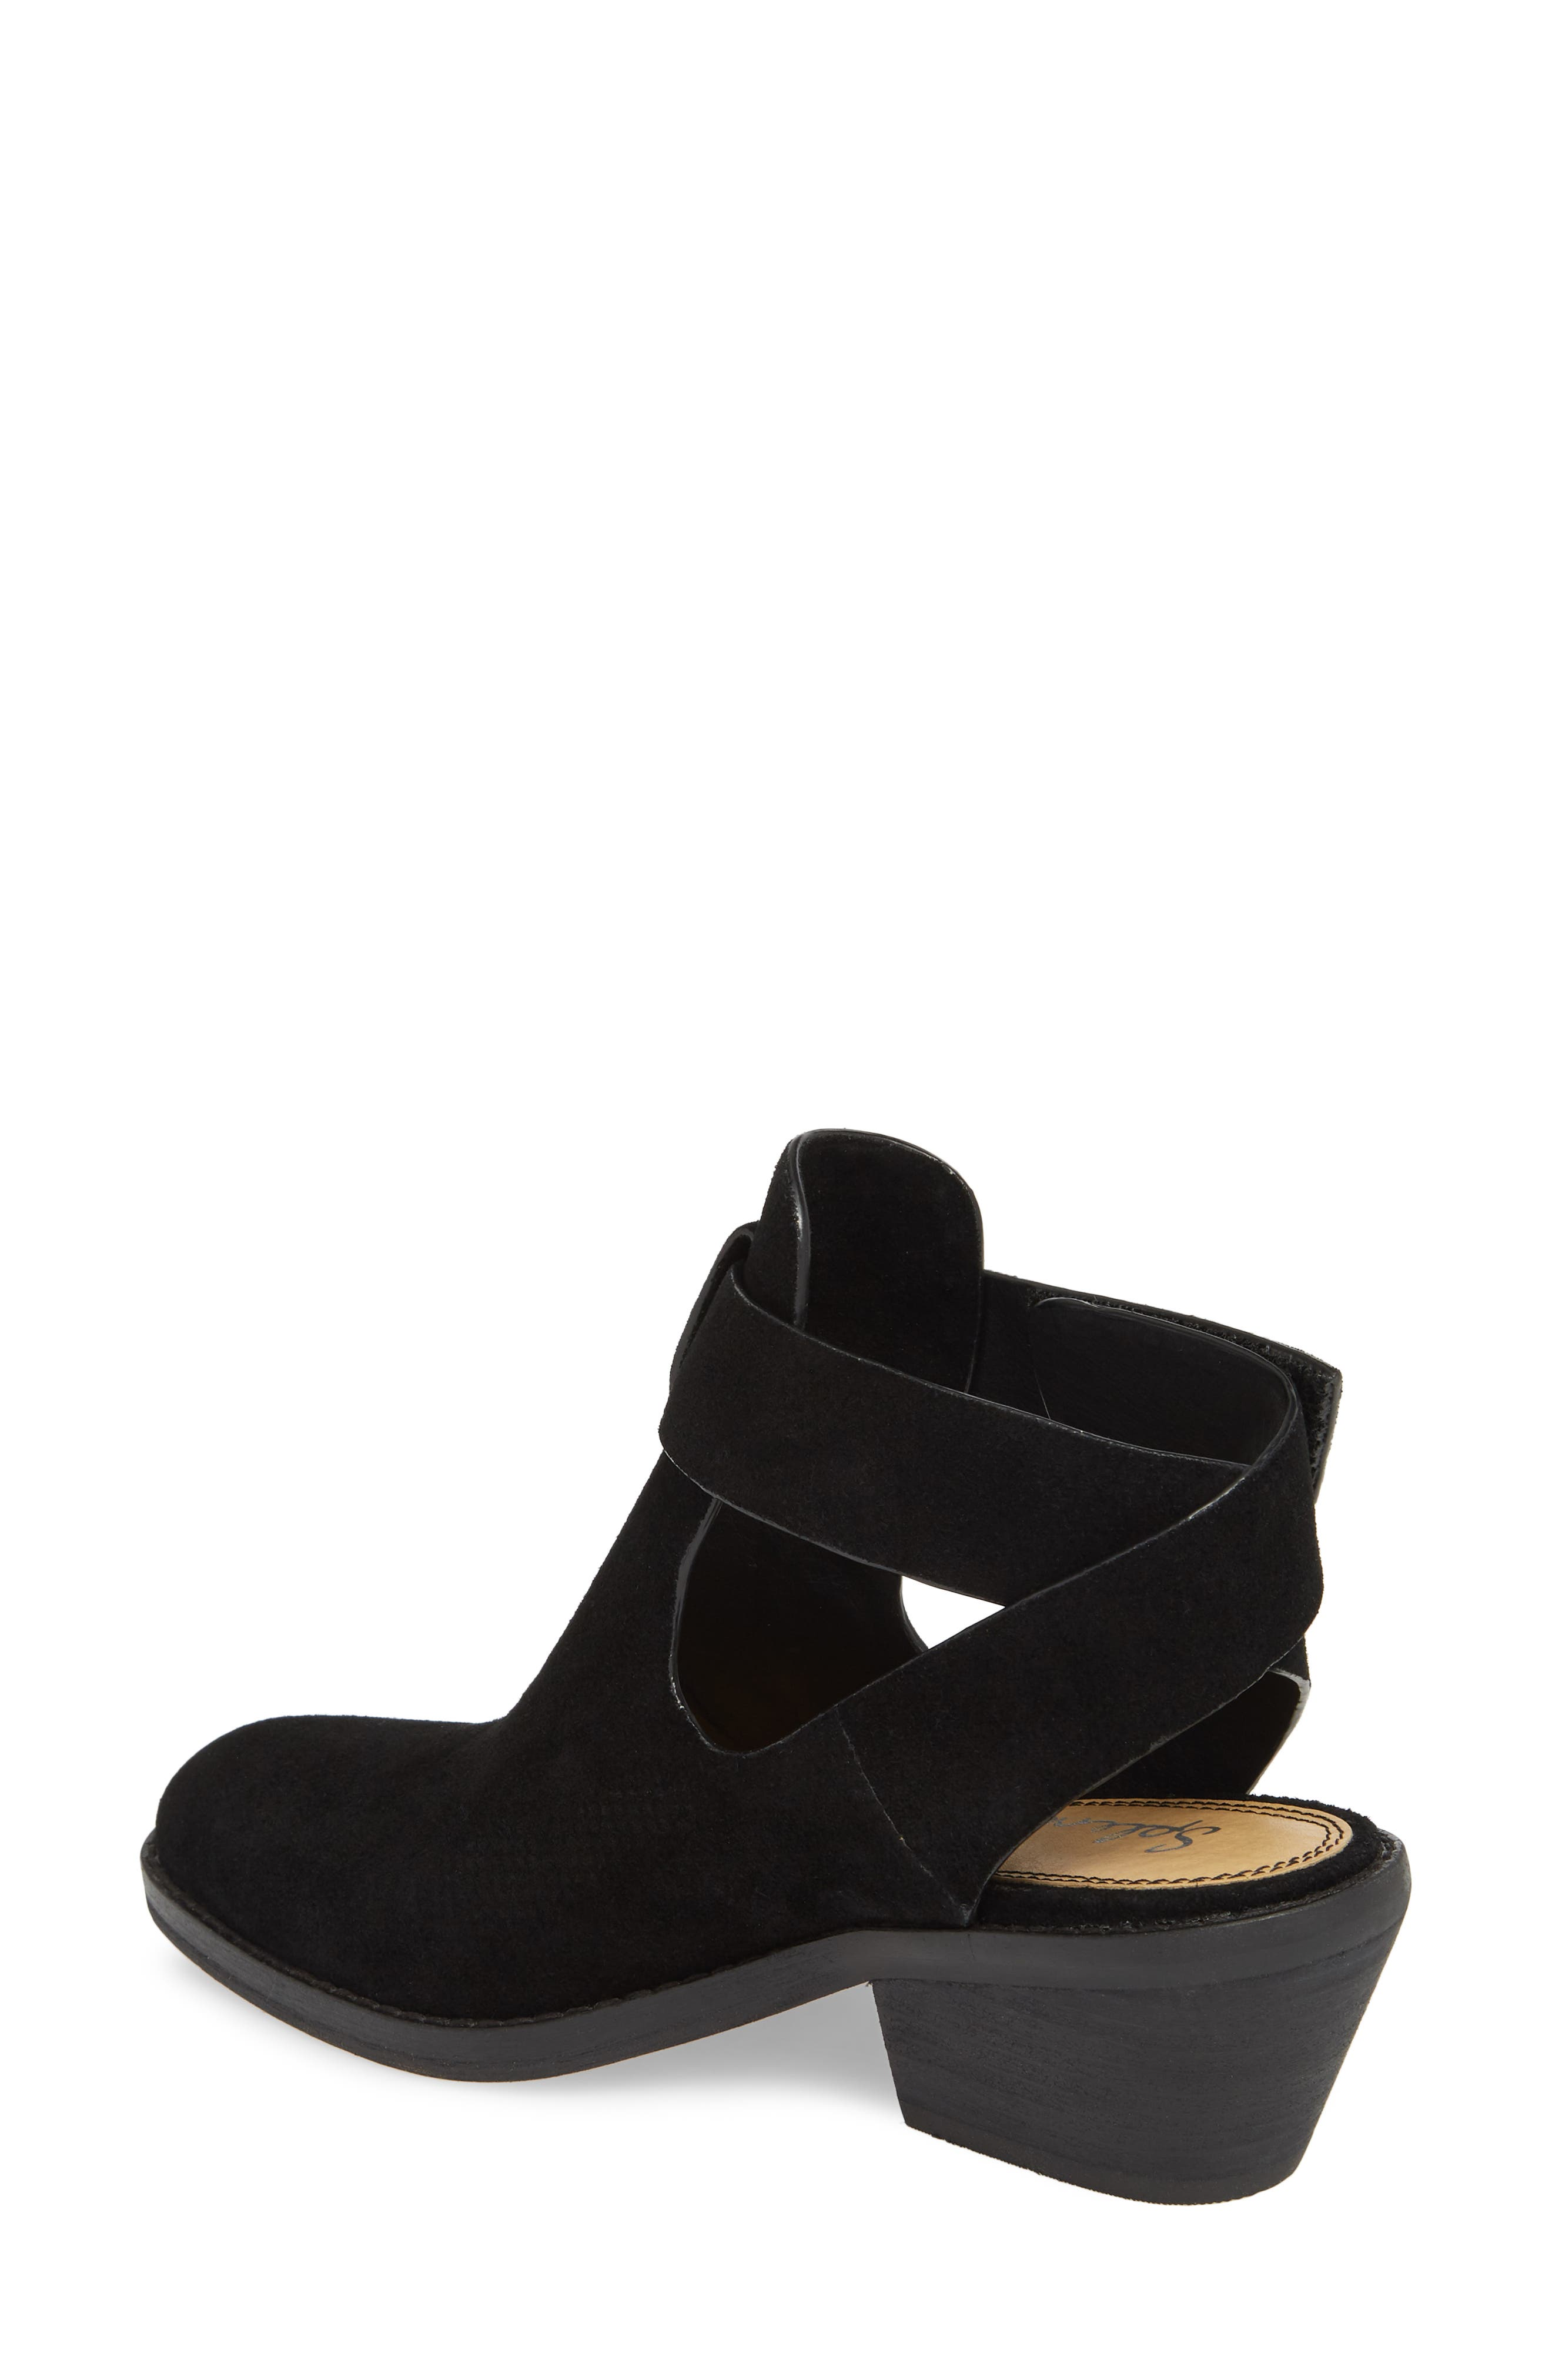 Cadell Bootie,                             Alternate thumbnail 2, color,                             BLACK SUEDE